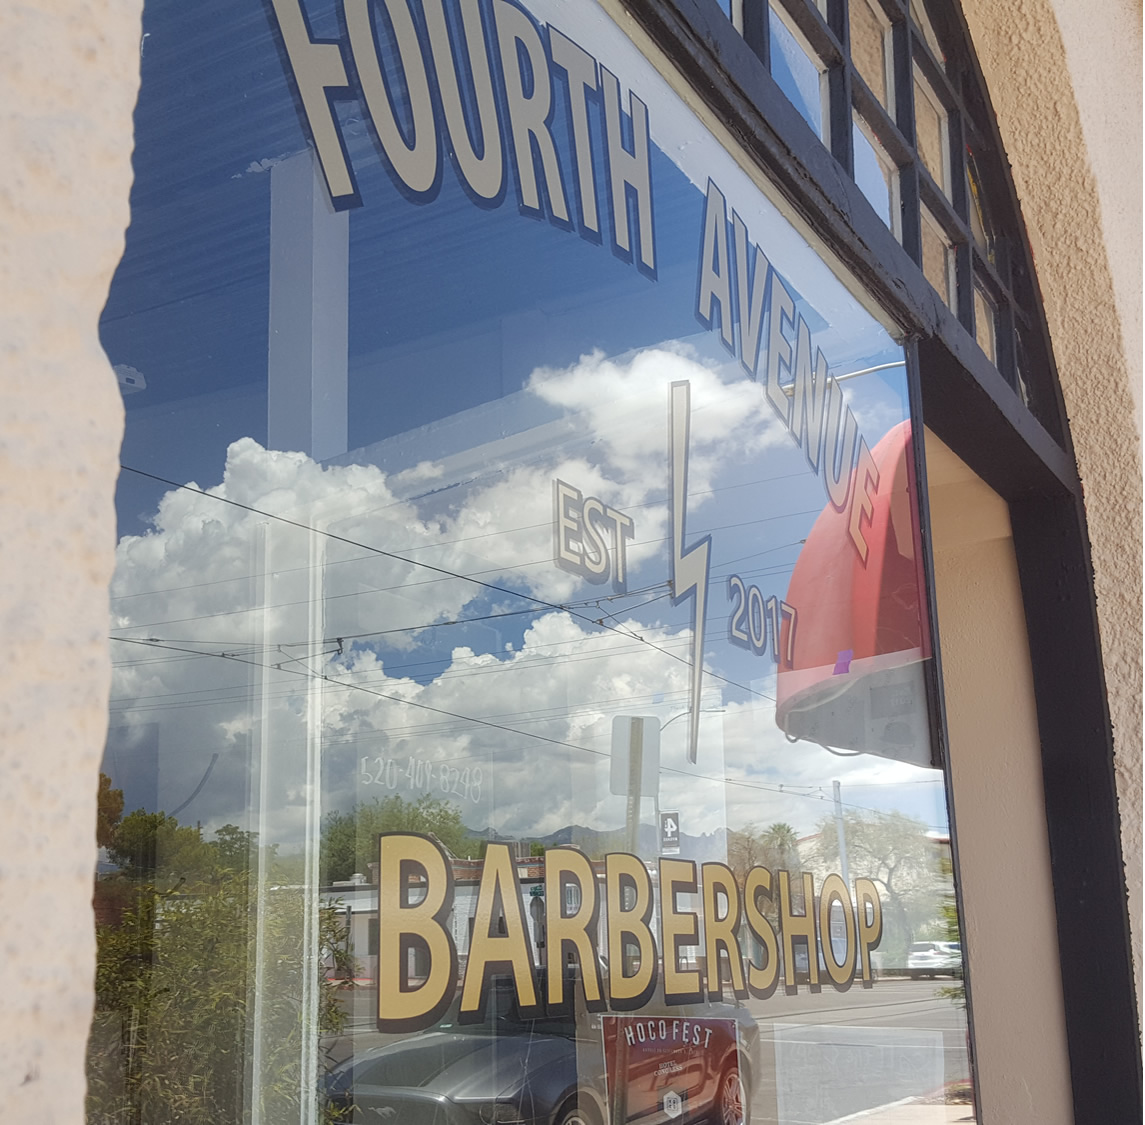 Fourth Ave Barbershop - WUNA Newsletter